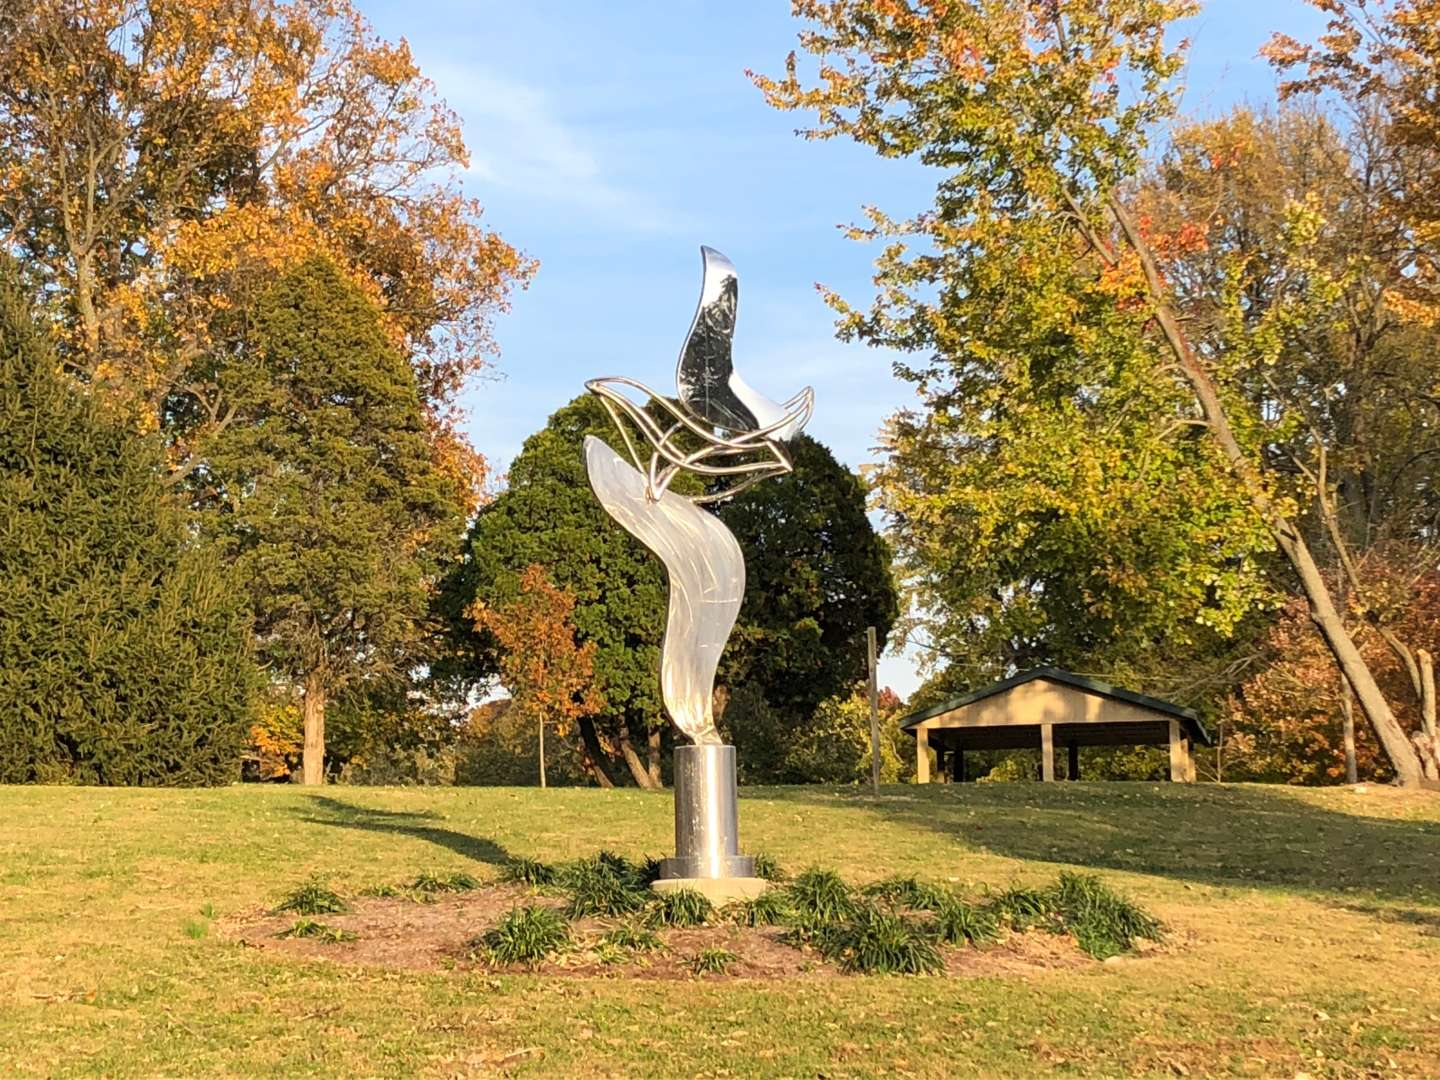 An abstract sculpture in Deming Park